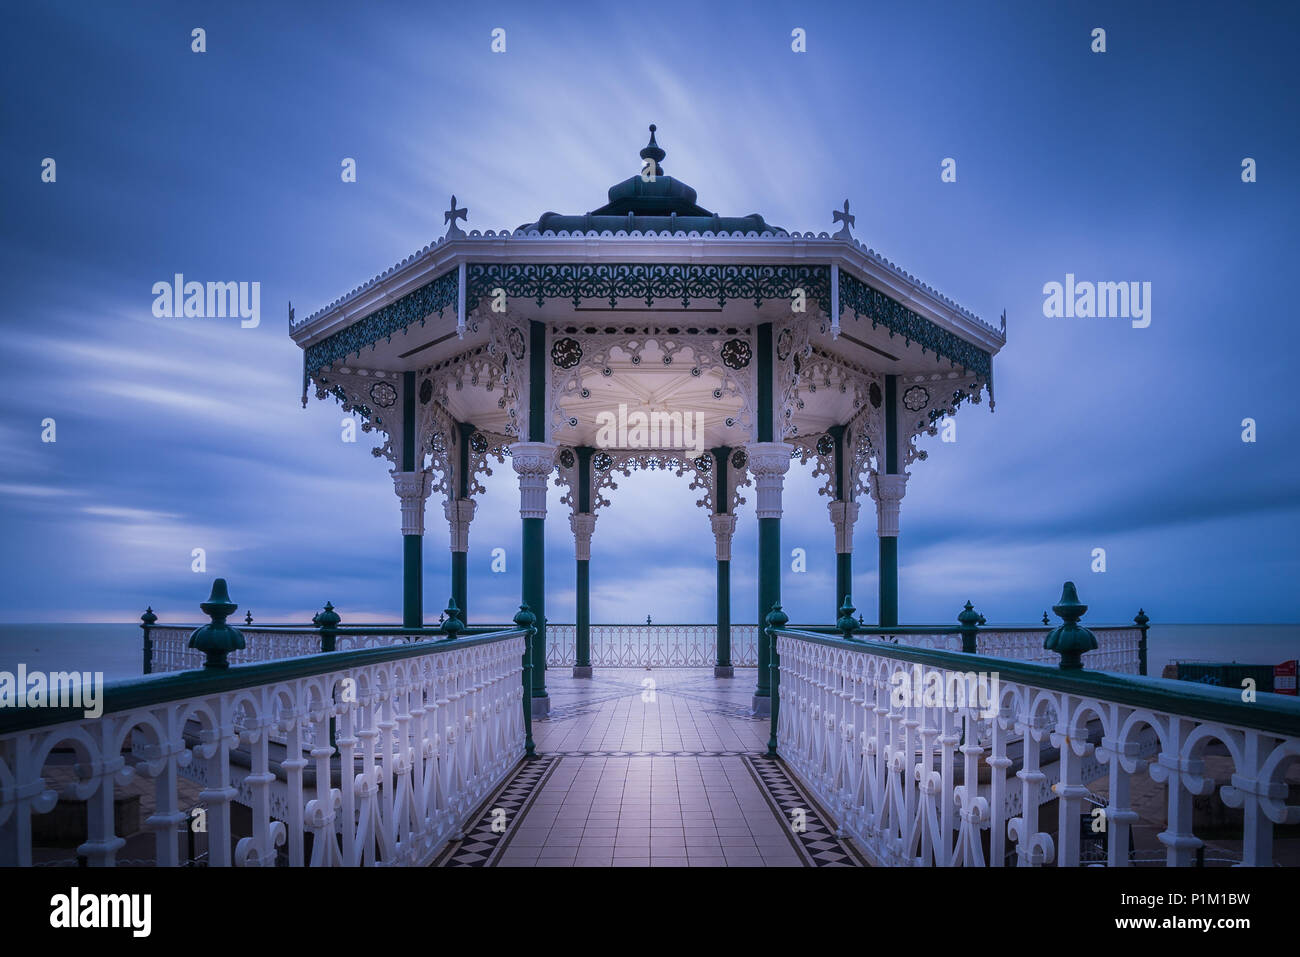 Brighton Bandstand, Sussex | Photo Taken By Andy Hornby Photography (http://www.PerfectExposure.Me) - Stock Image